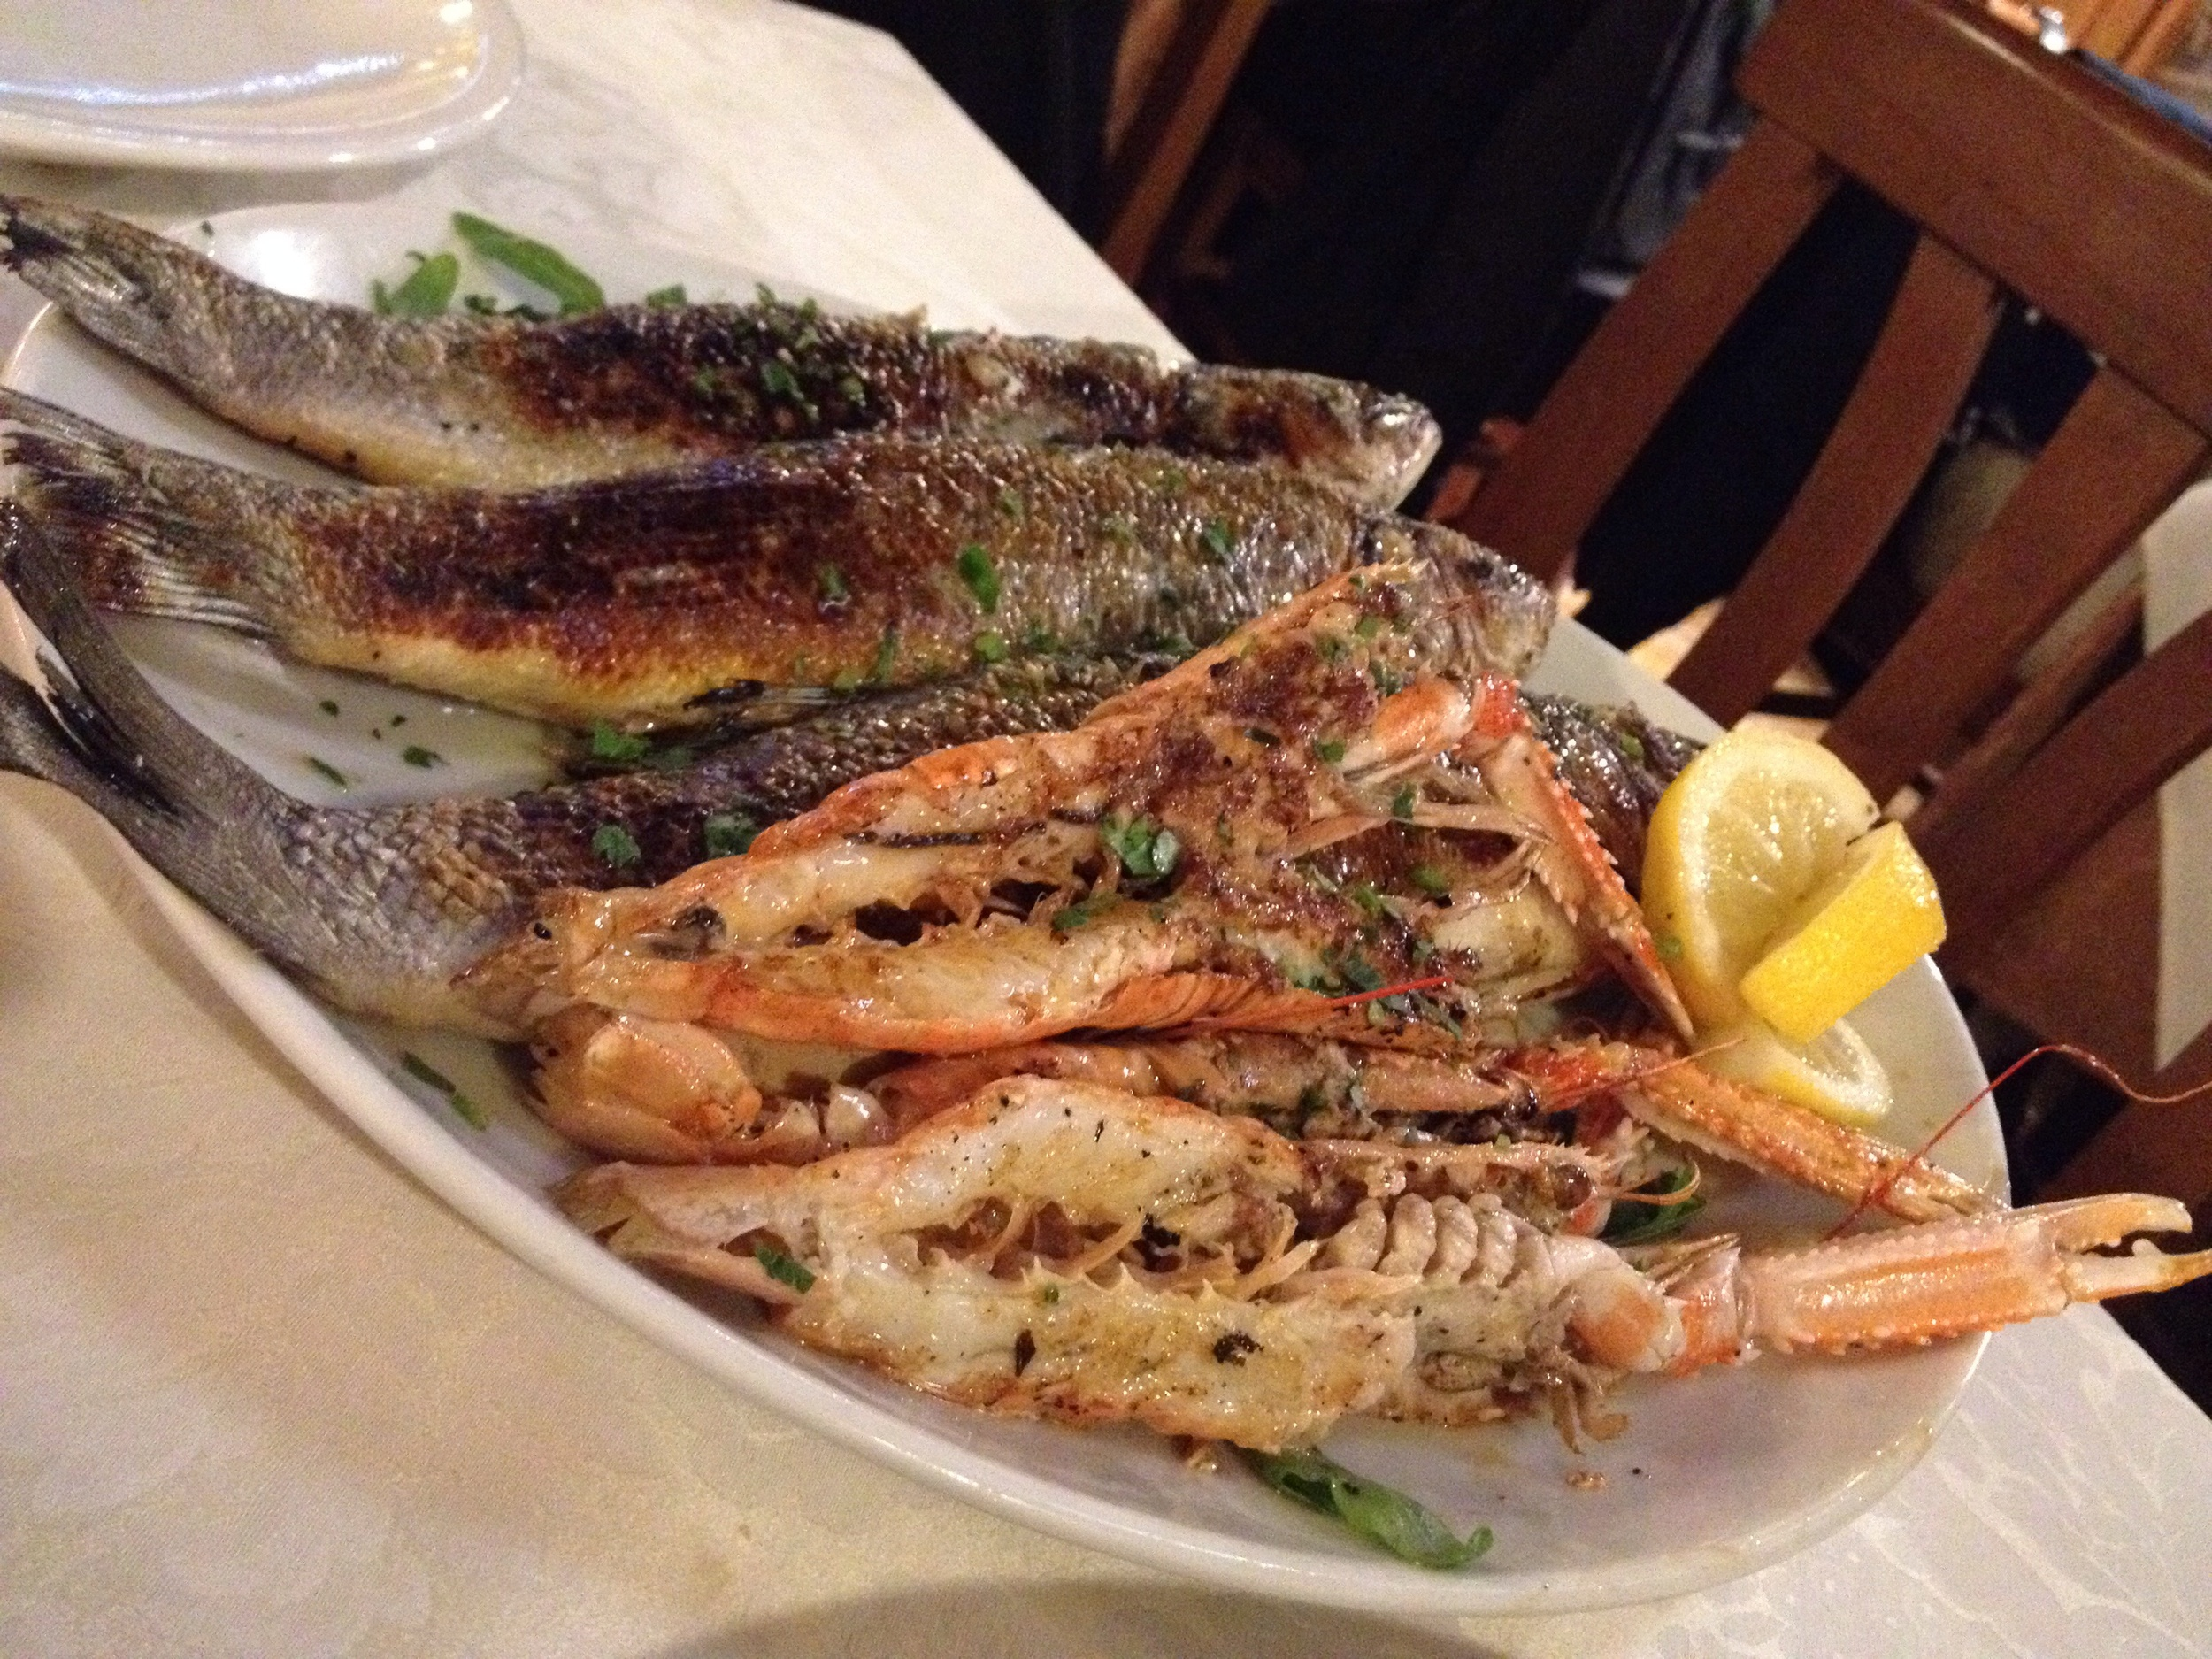 Grilled fish of some sort and scampi